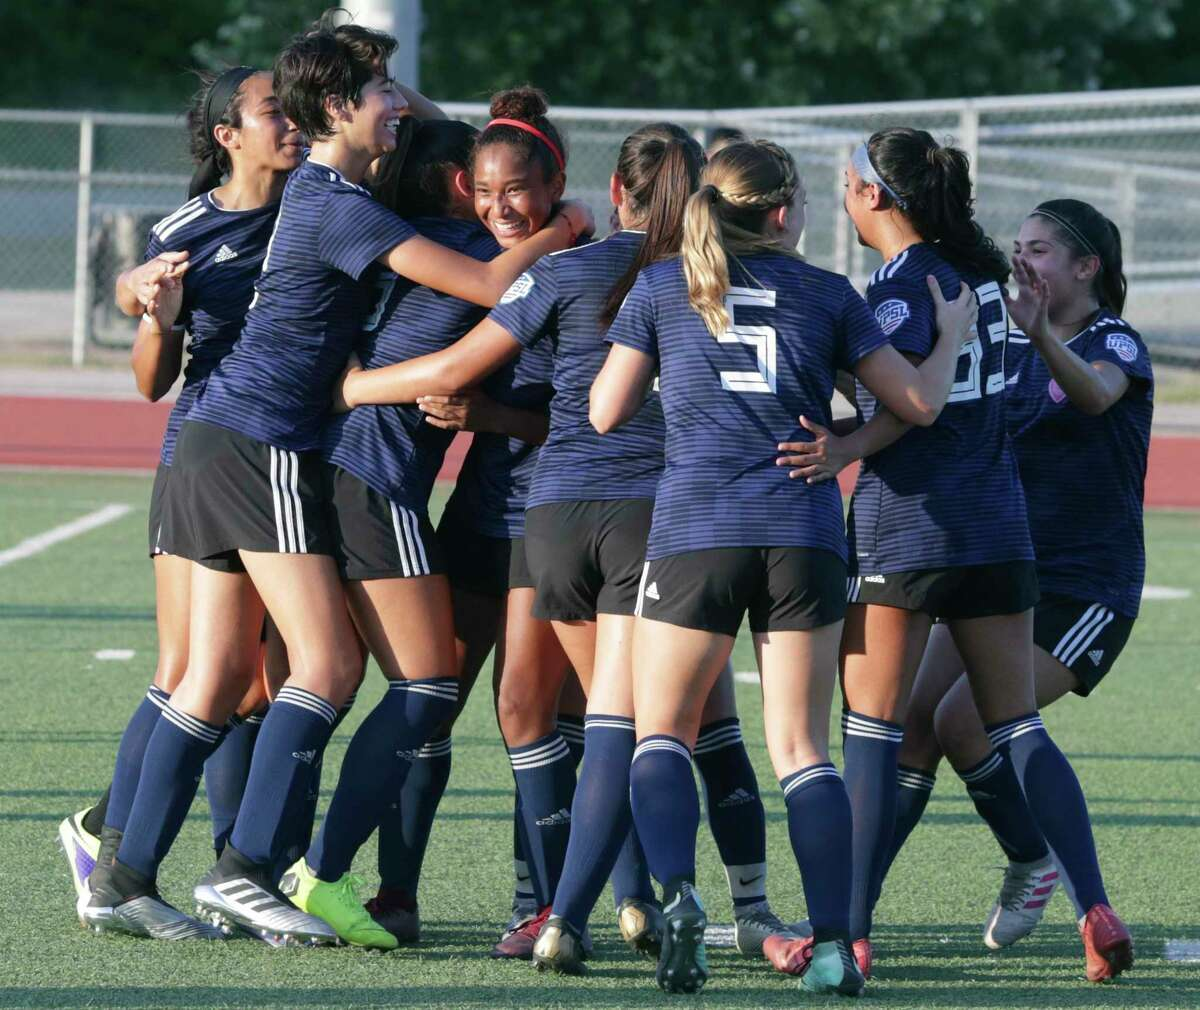 Sporti players celebrate a goal at the the United Premier Soccer League Central Conference final between San Antonio women's soccer teams Sporti FC and Samba FC at Wheatley Heights Sports Complex on July, 27 2019.